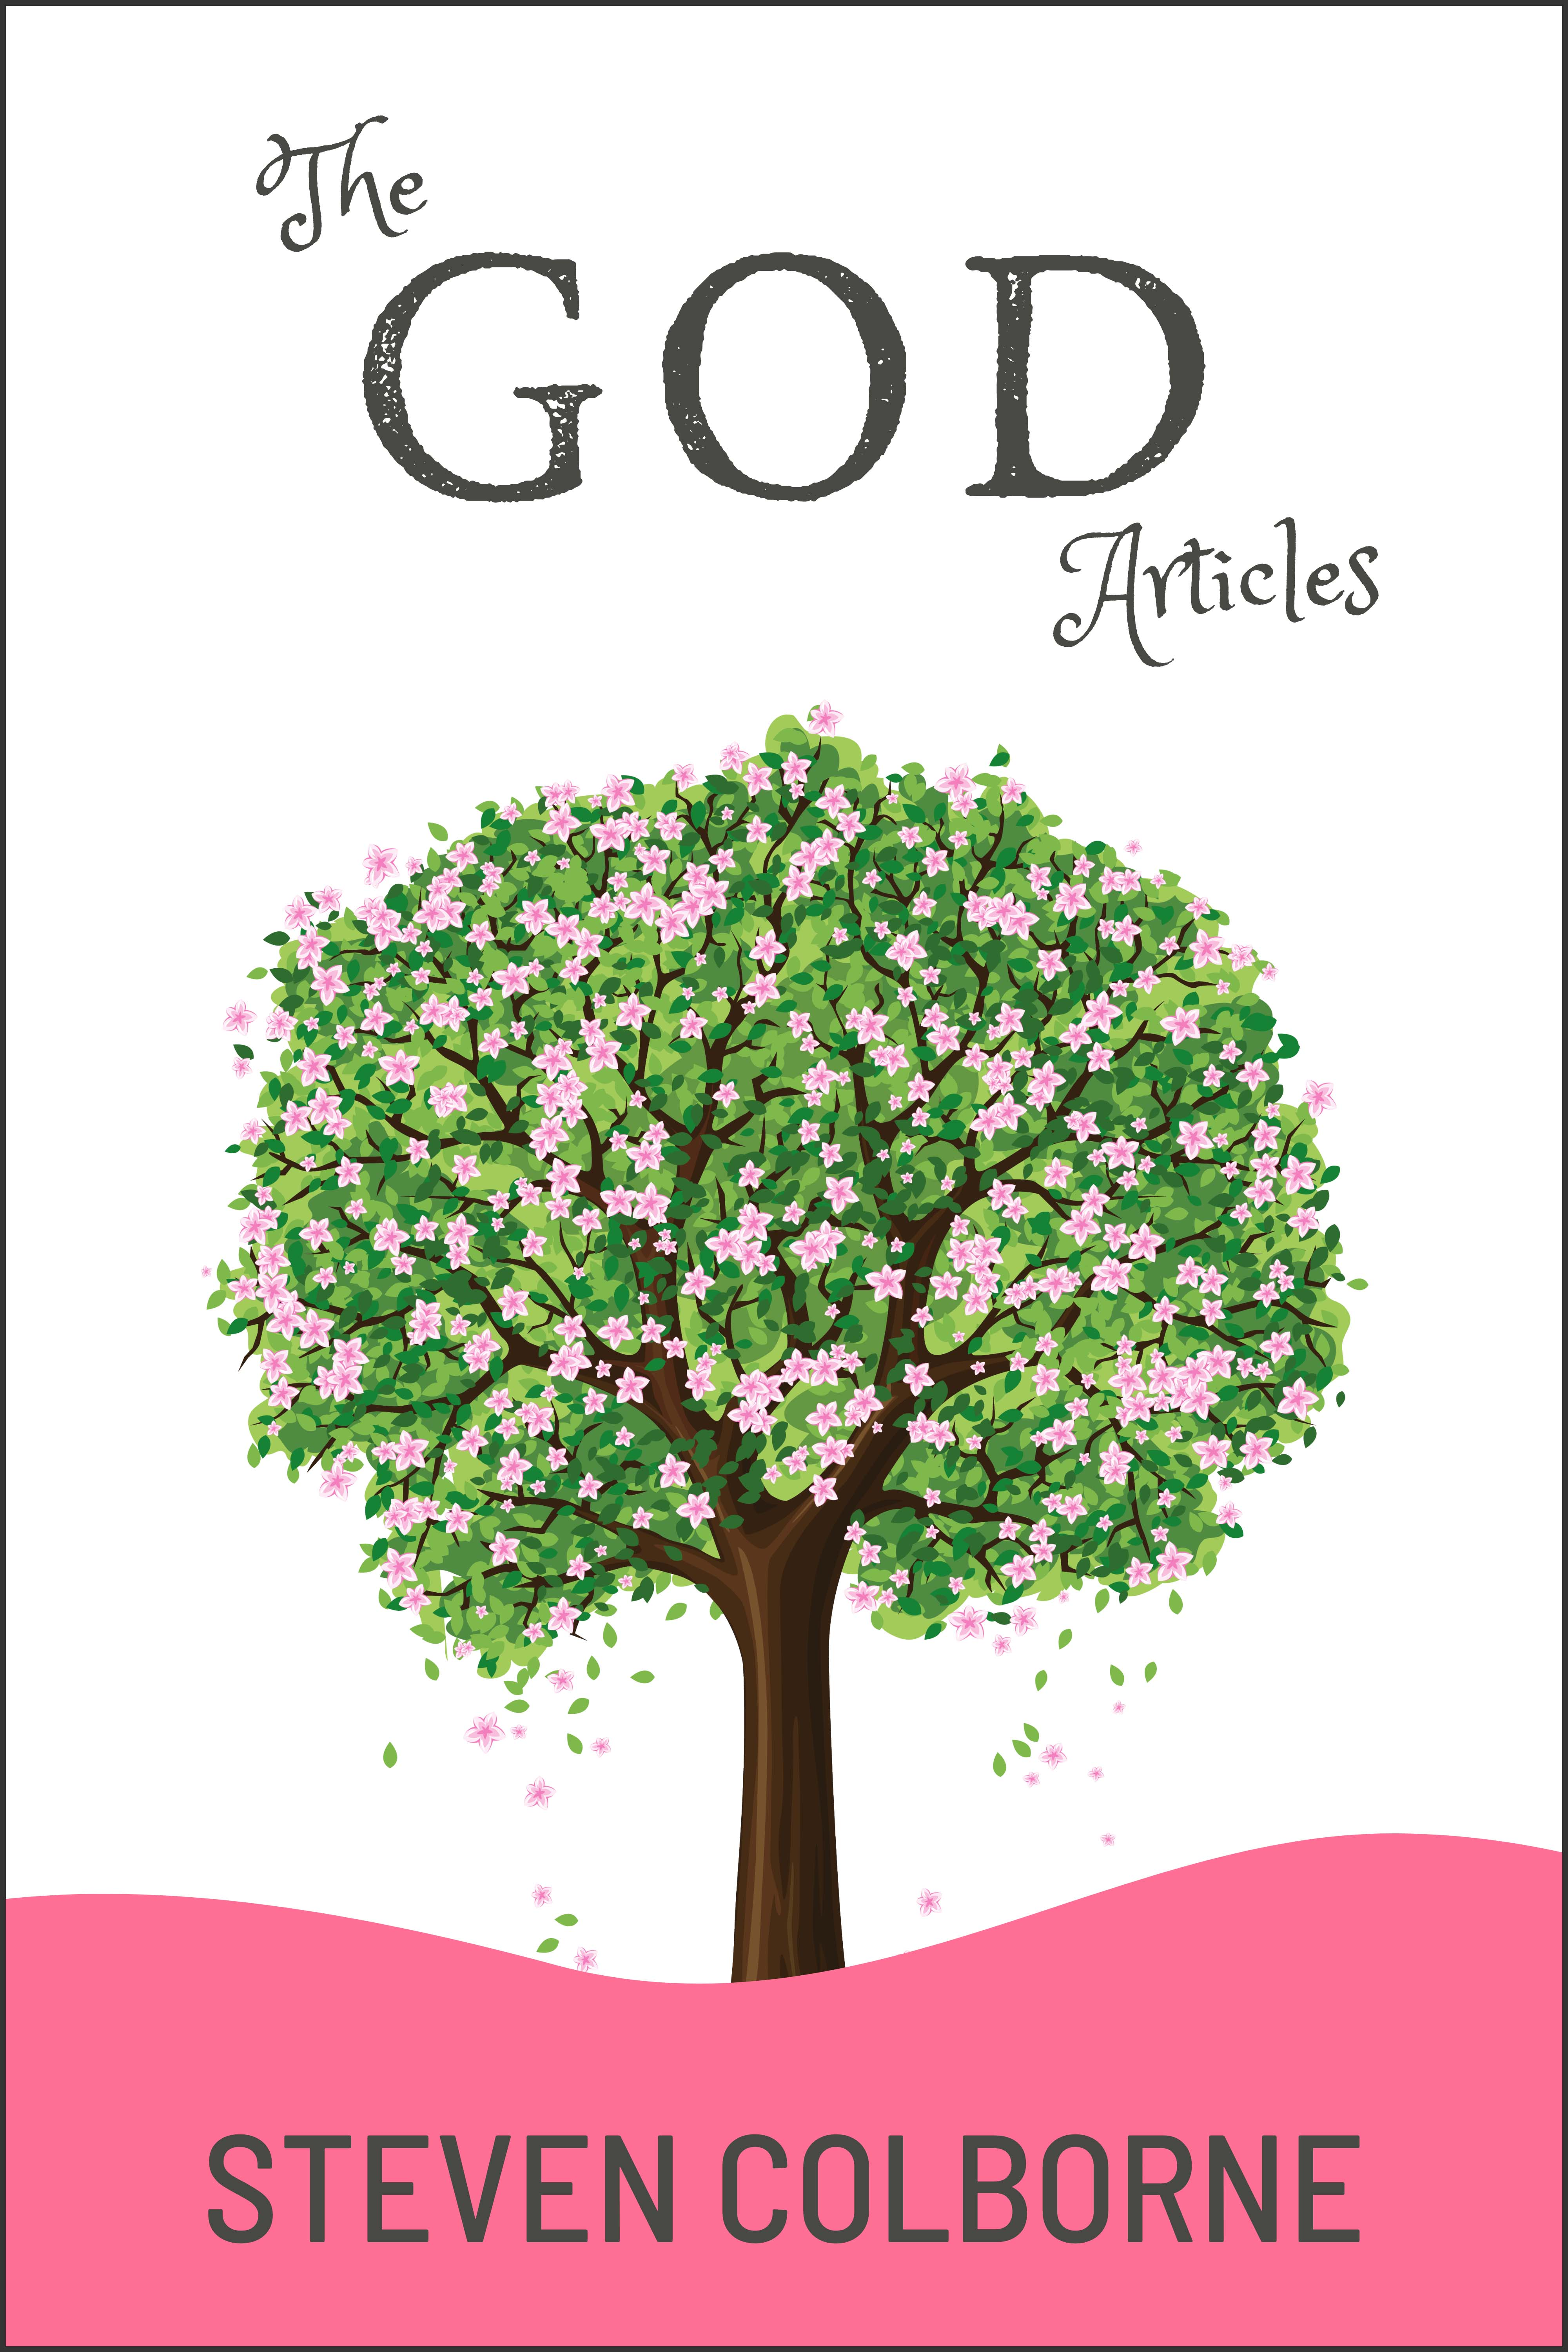 The God Articles by Steven Colborne